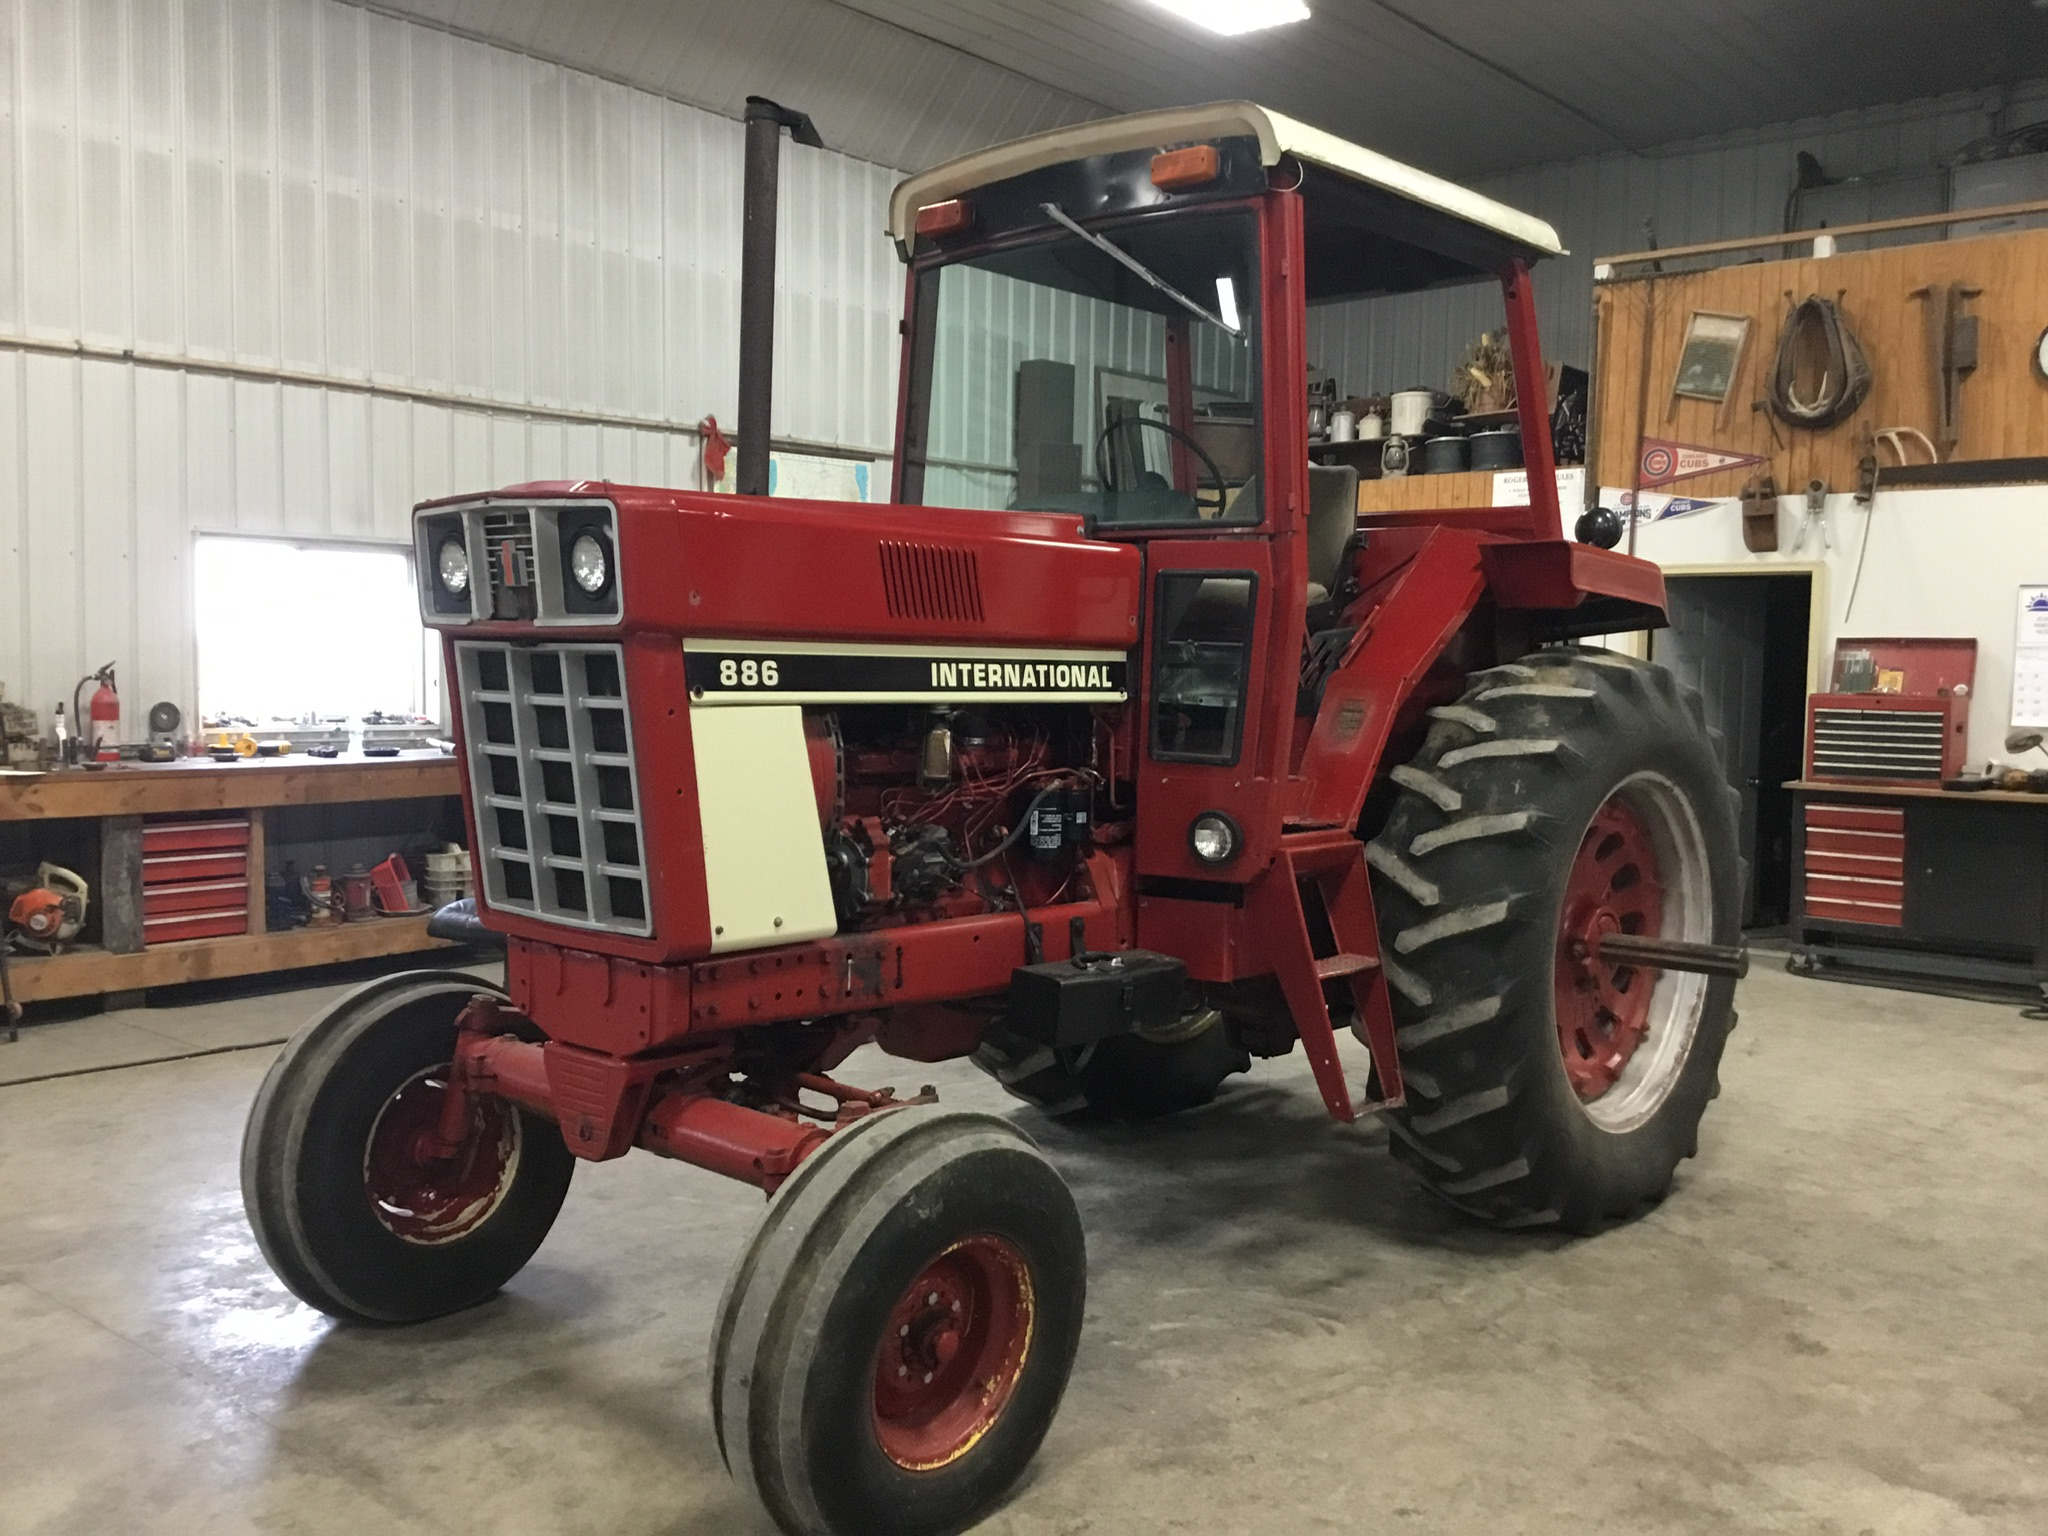 1976 International 886 Diesel, 4 Post Rops, 2 Hyd. Remotes, 3 Pt. Hitch, PTO, Serial #009595